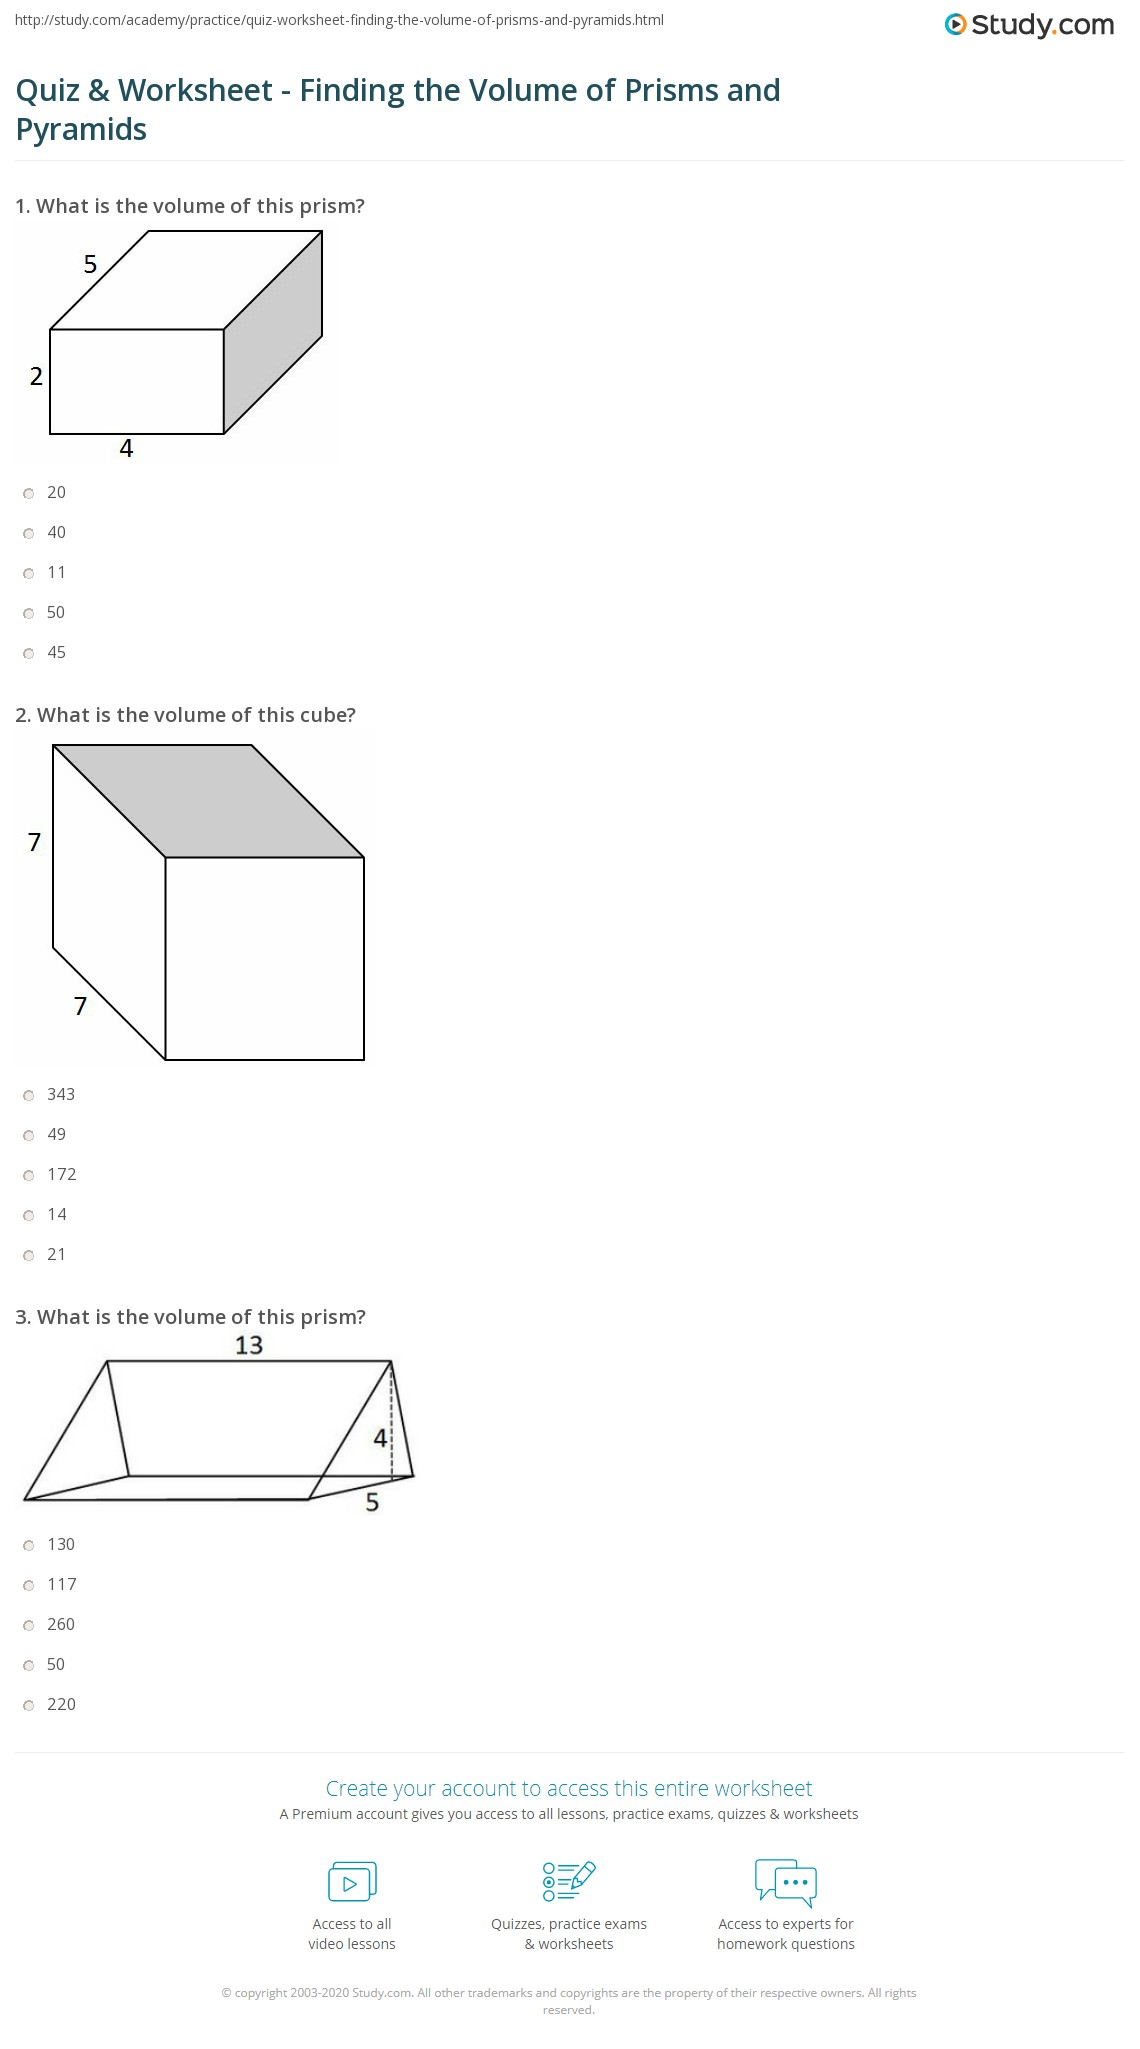 hight resolution of Quiz \u0026 Worksheet - Finding the Volume of Prisms and Pyramids   Study.com